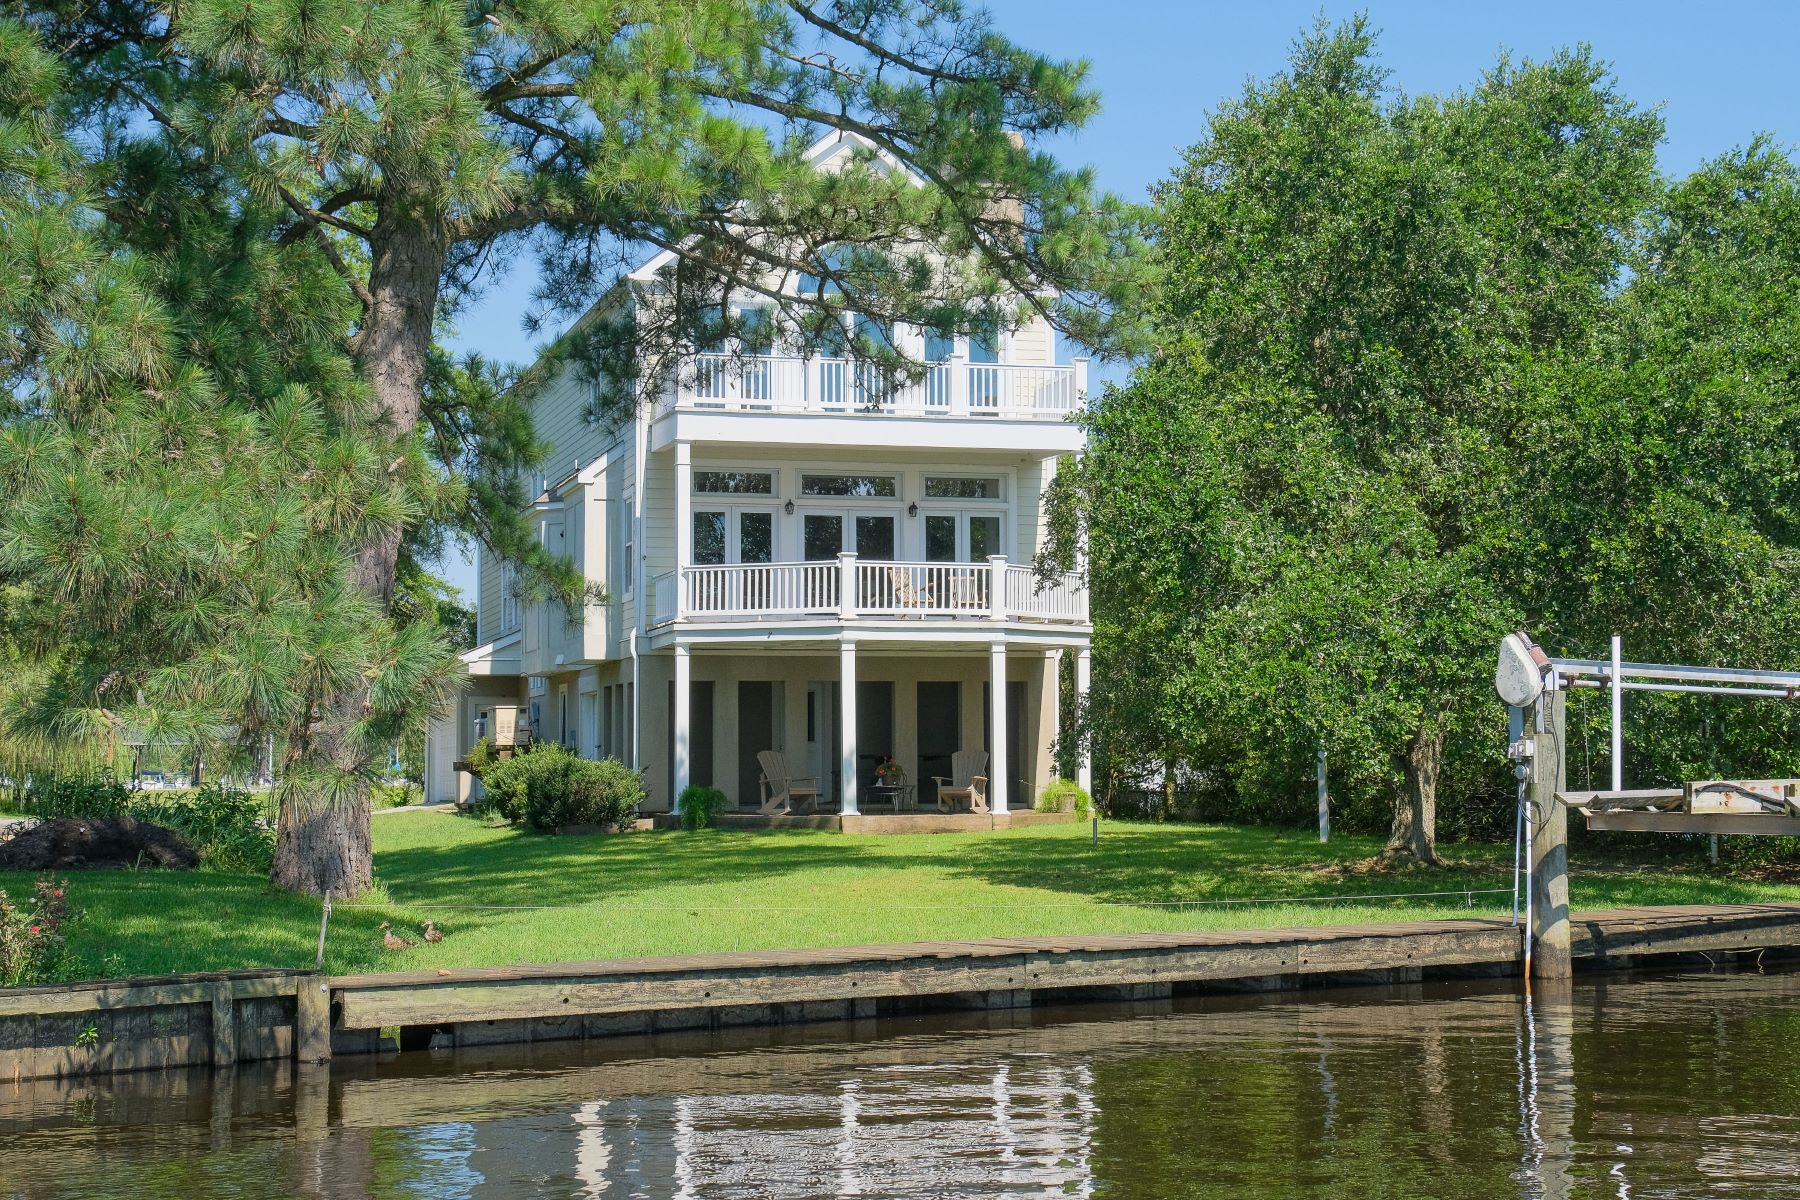 Single Family Homes for Active at IN TOWN WATERFRONT AND MARINA 305 Queen Anne Dr Edenton, North Carolina 27932 United States